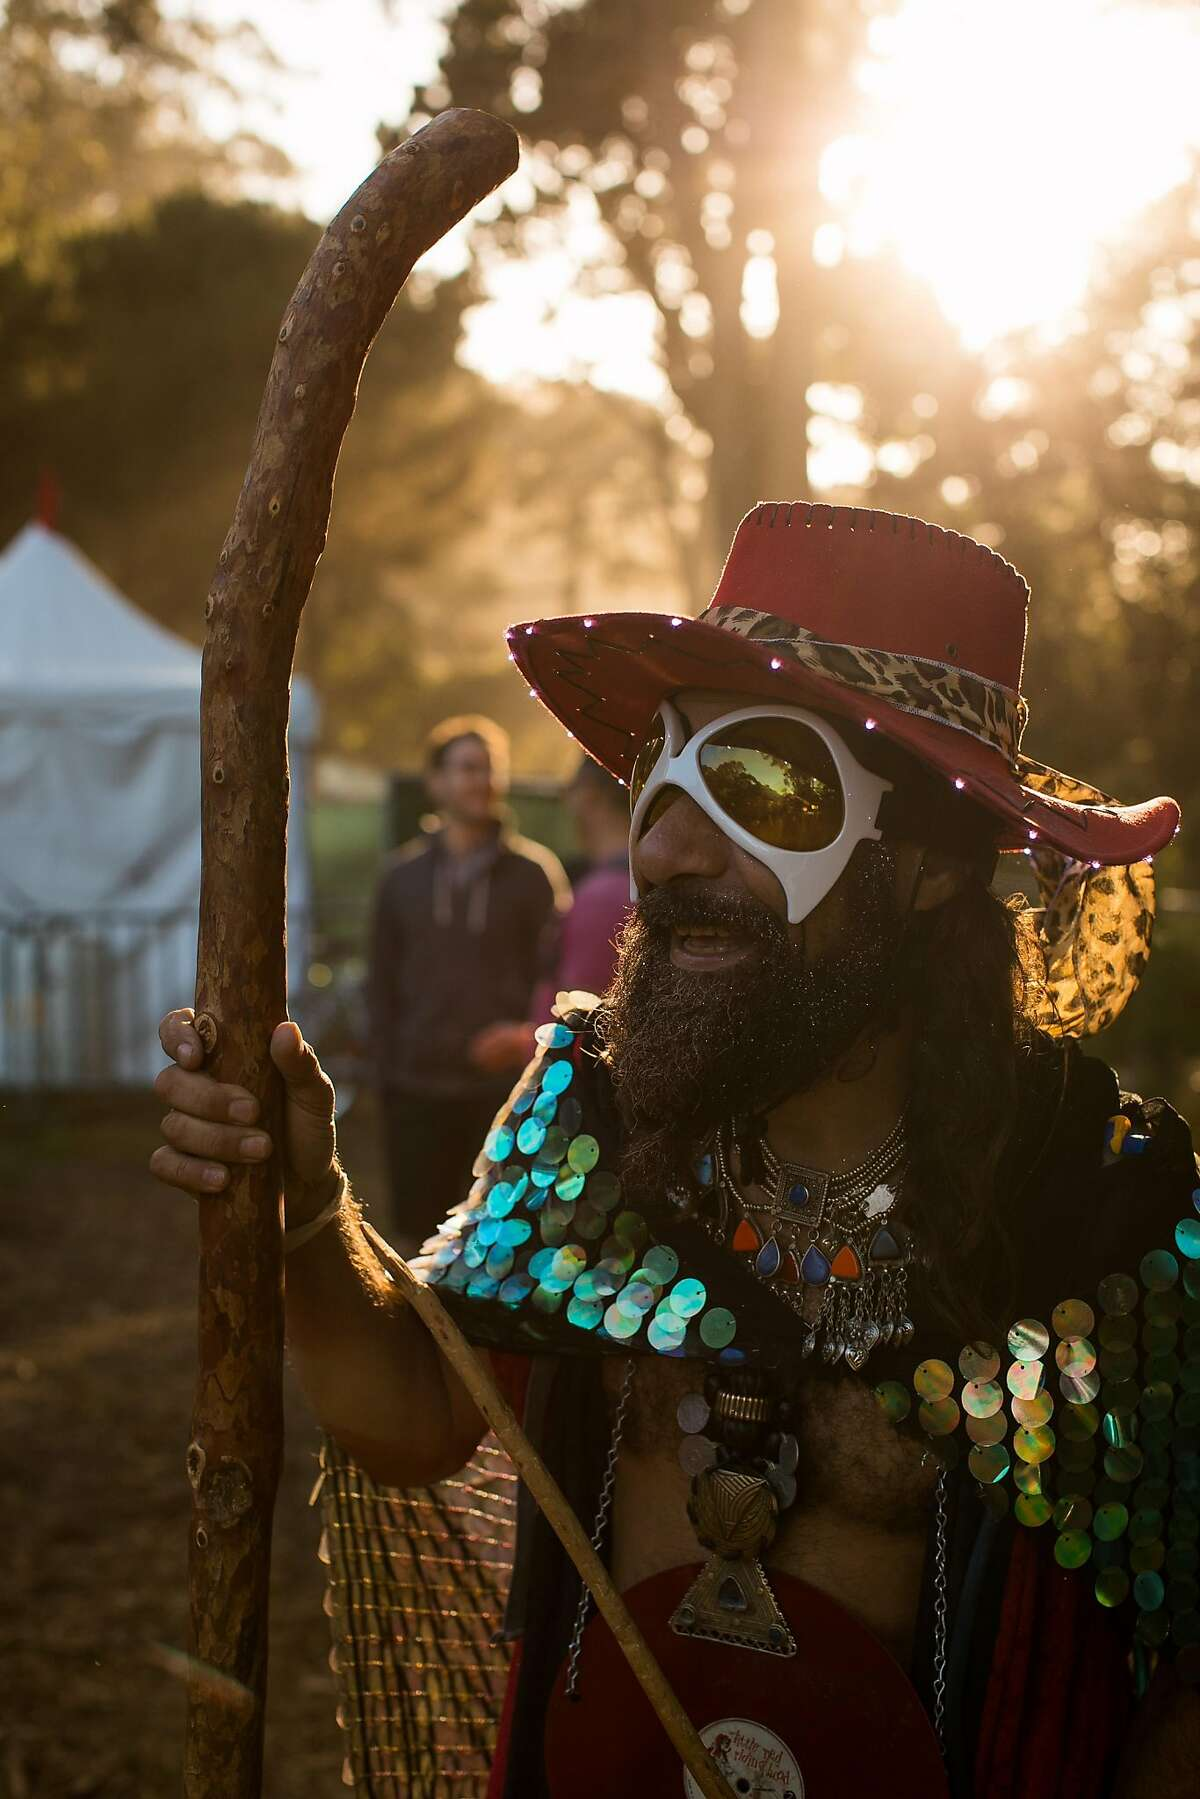 Robert E Micallef, aka the Merlin the Wizard, photographed during the Hardly Strictly Bluegrass in San Francisco, Calif. Saturday, October 7, 2017.